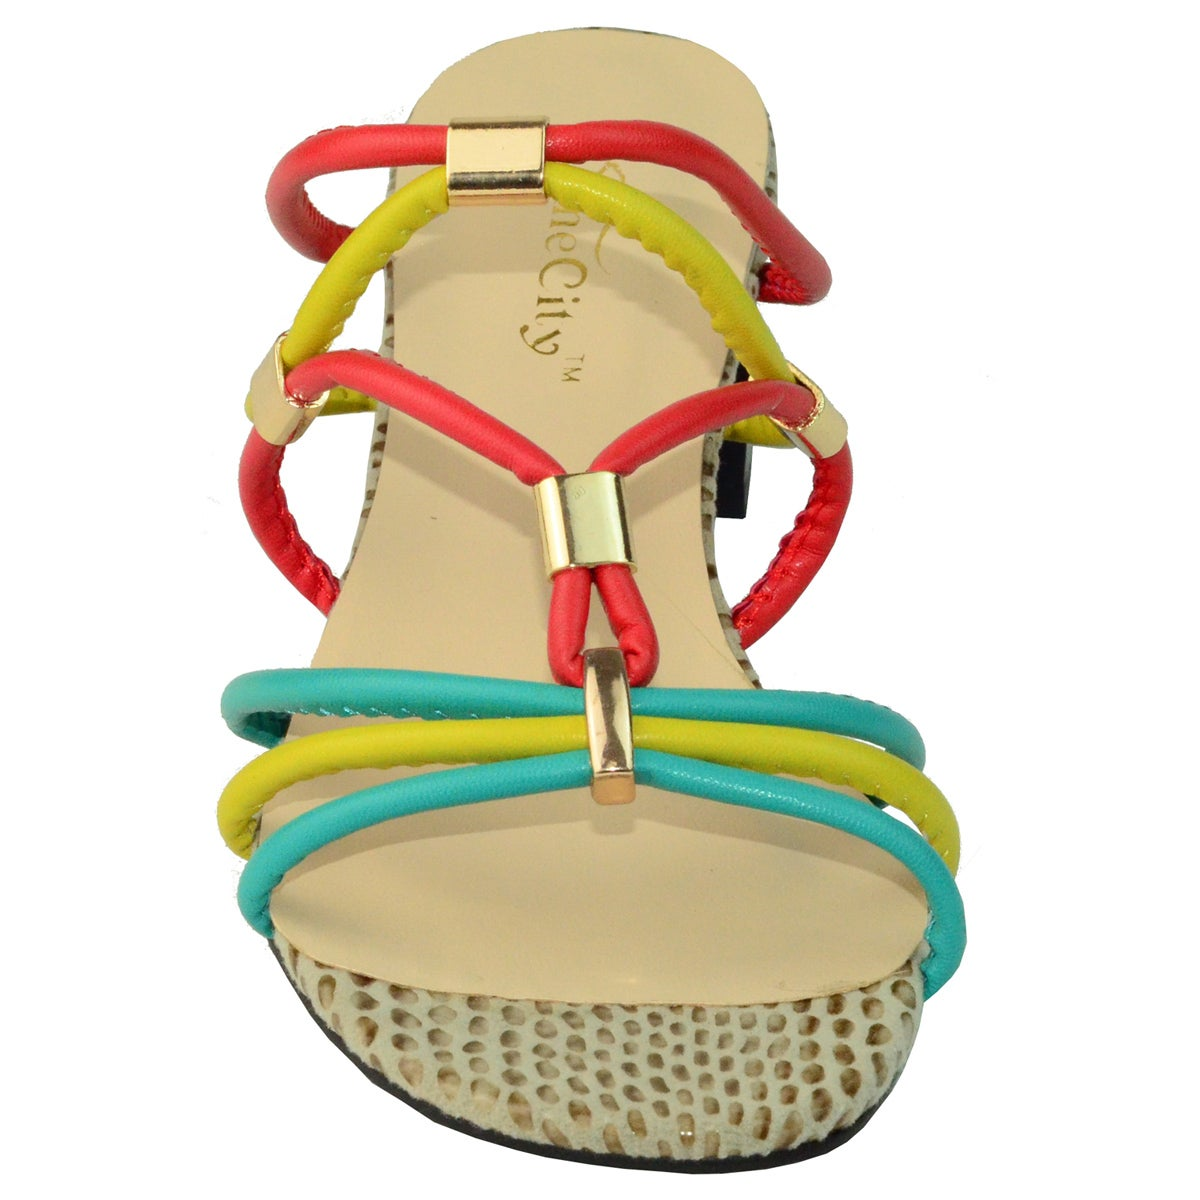 a152a658e2022 Shop Ann Creek Women s  Delray  Colorful Strappy Sandals - On Sale - Free  Shipping Today - Overstock.com - 8133881